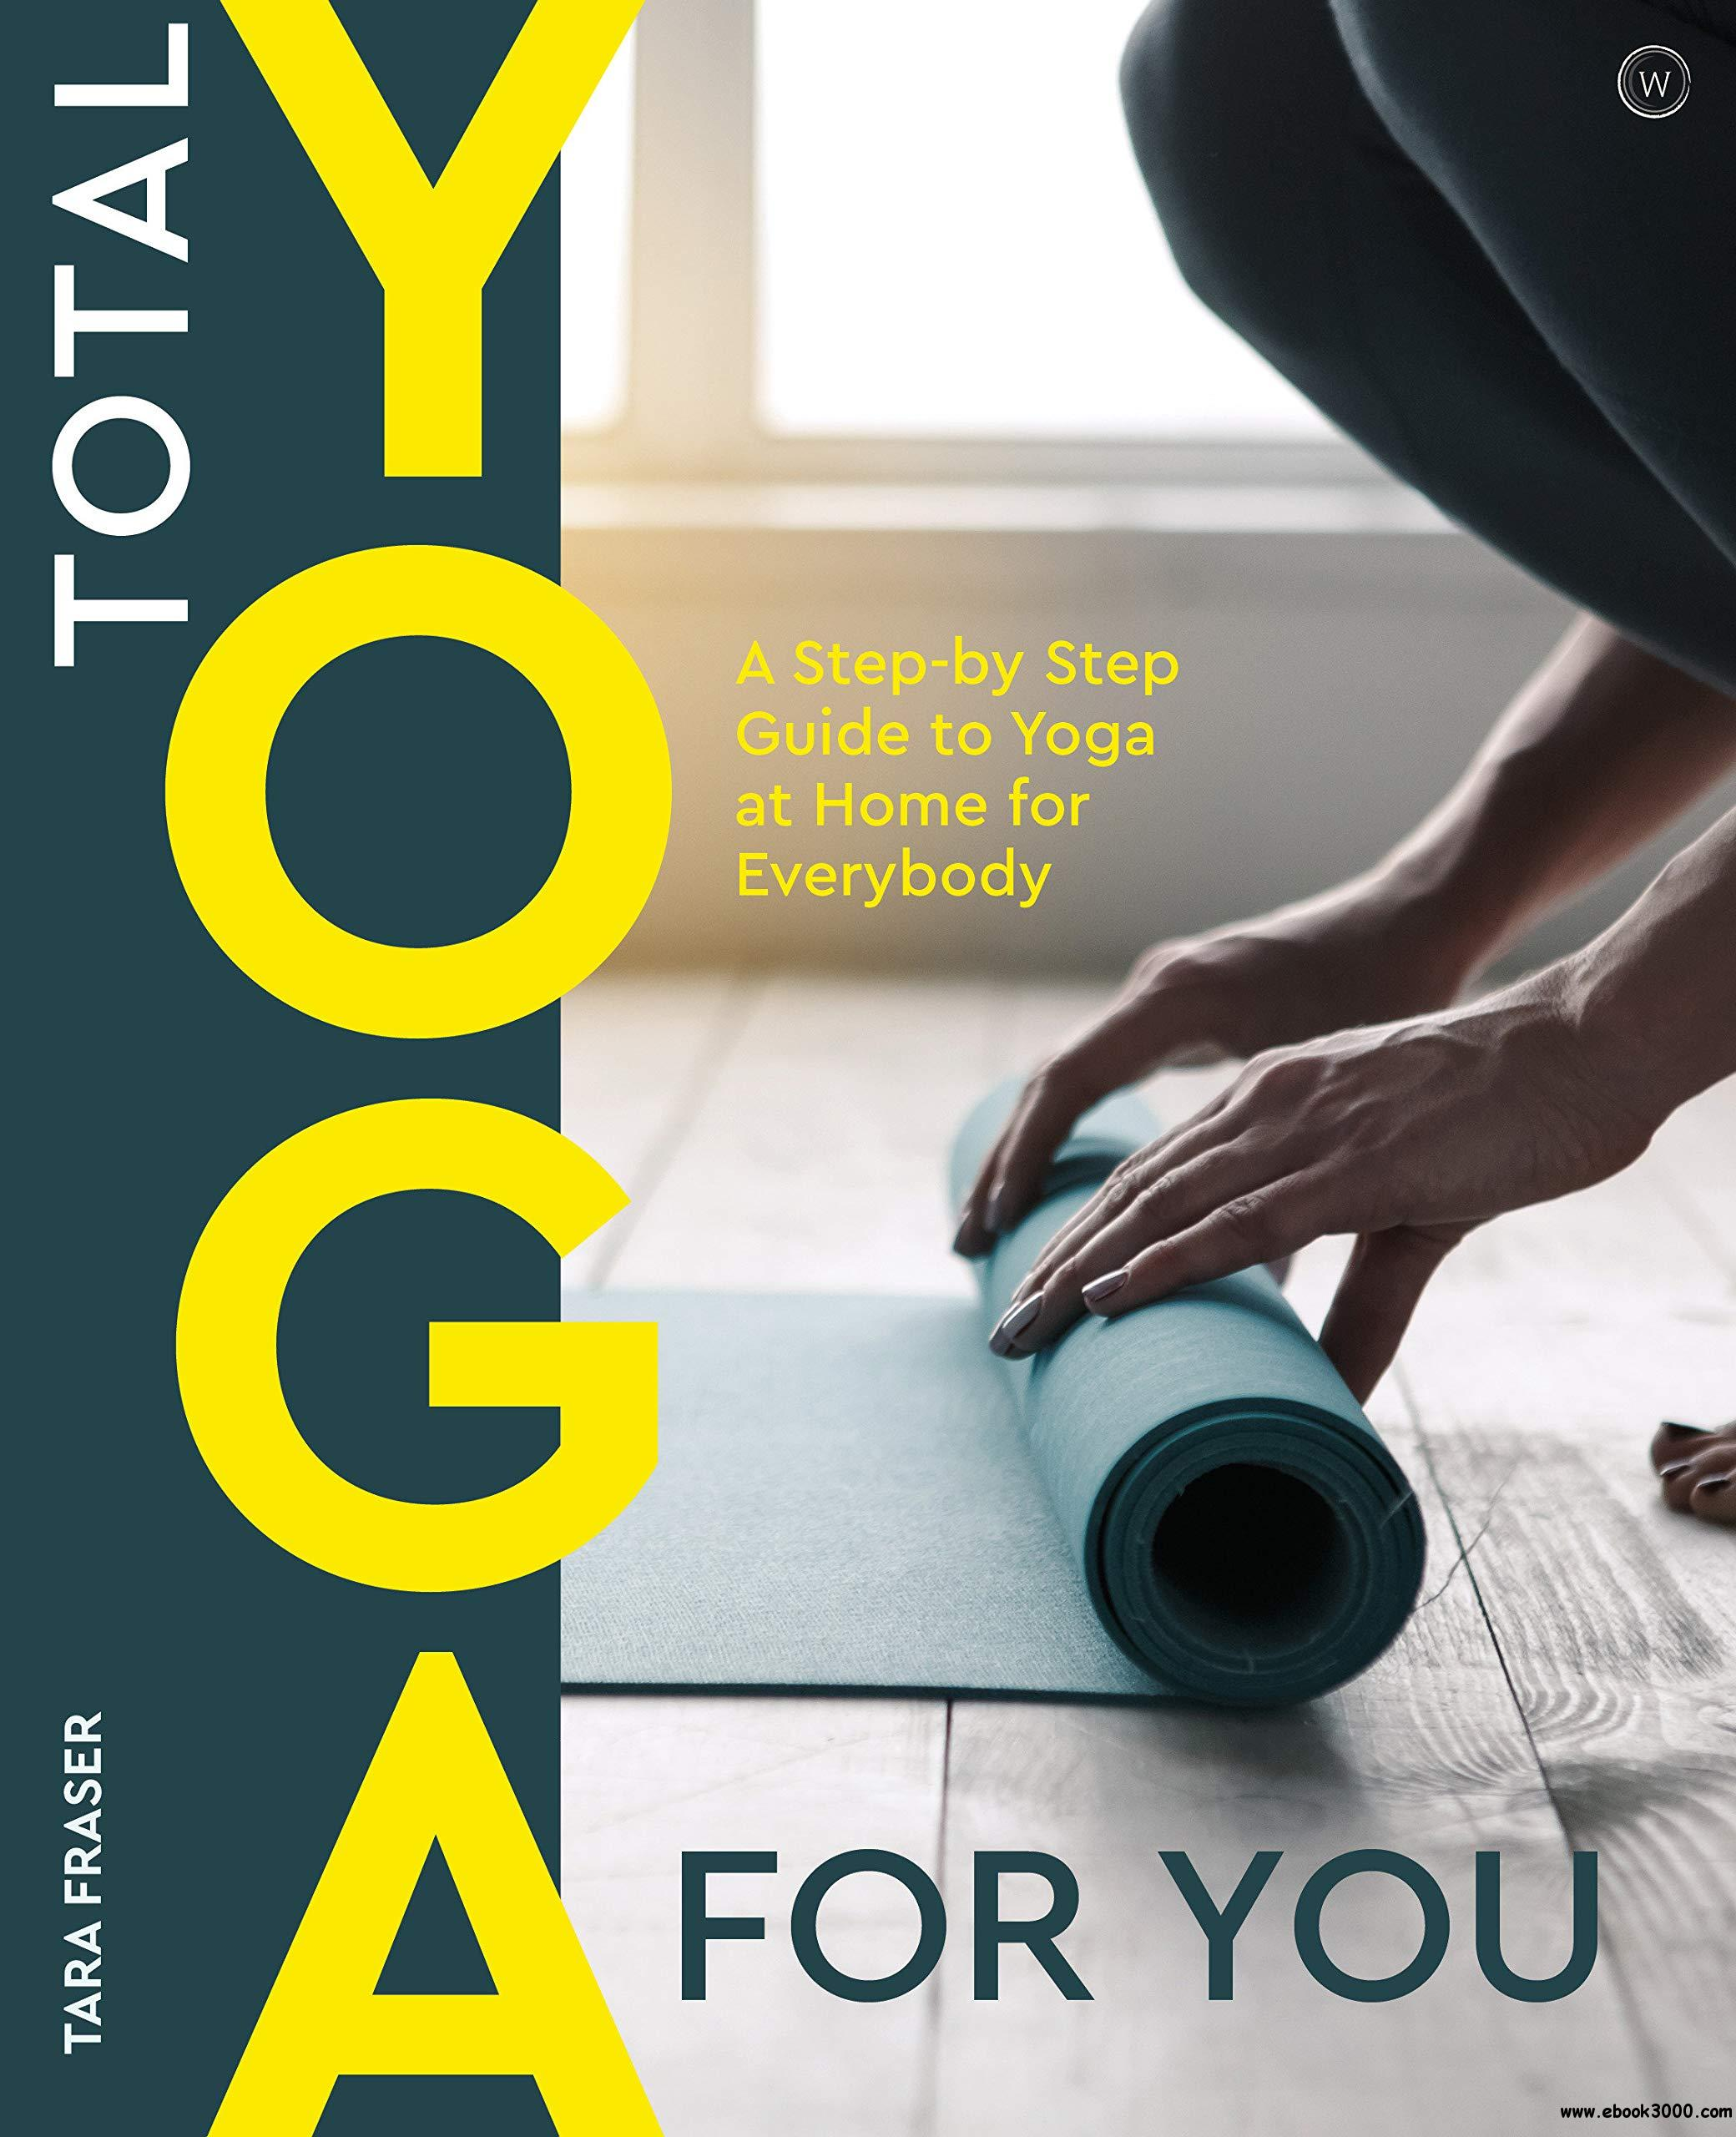 Total Yoga For You: A Step-by-step Guide to Yoga at Home for Everybody